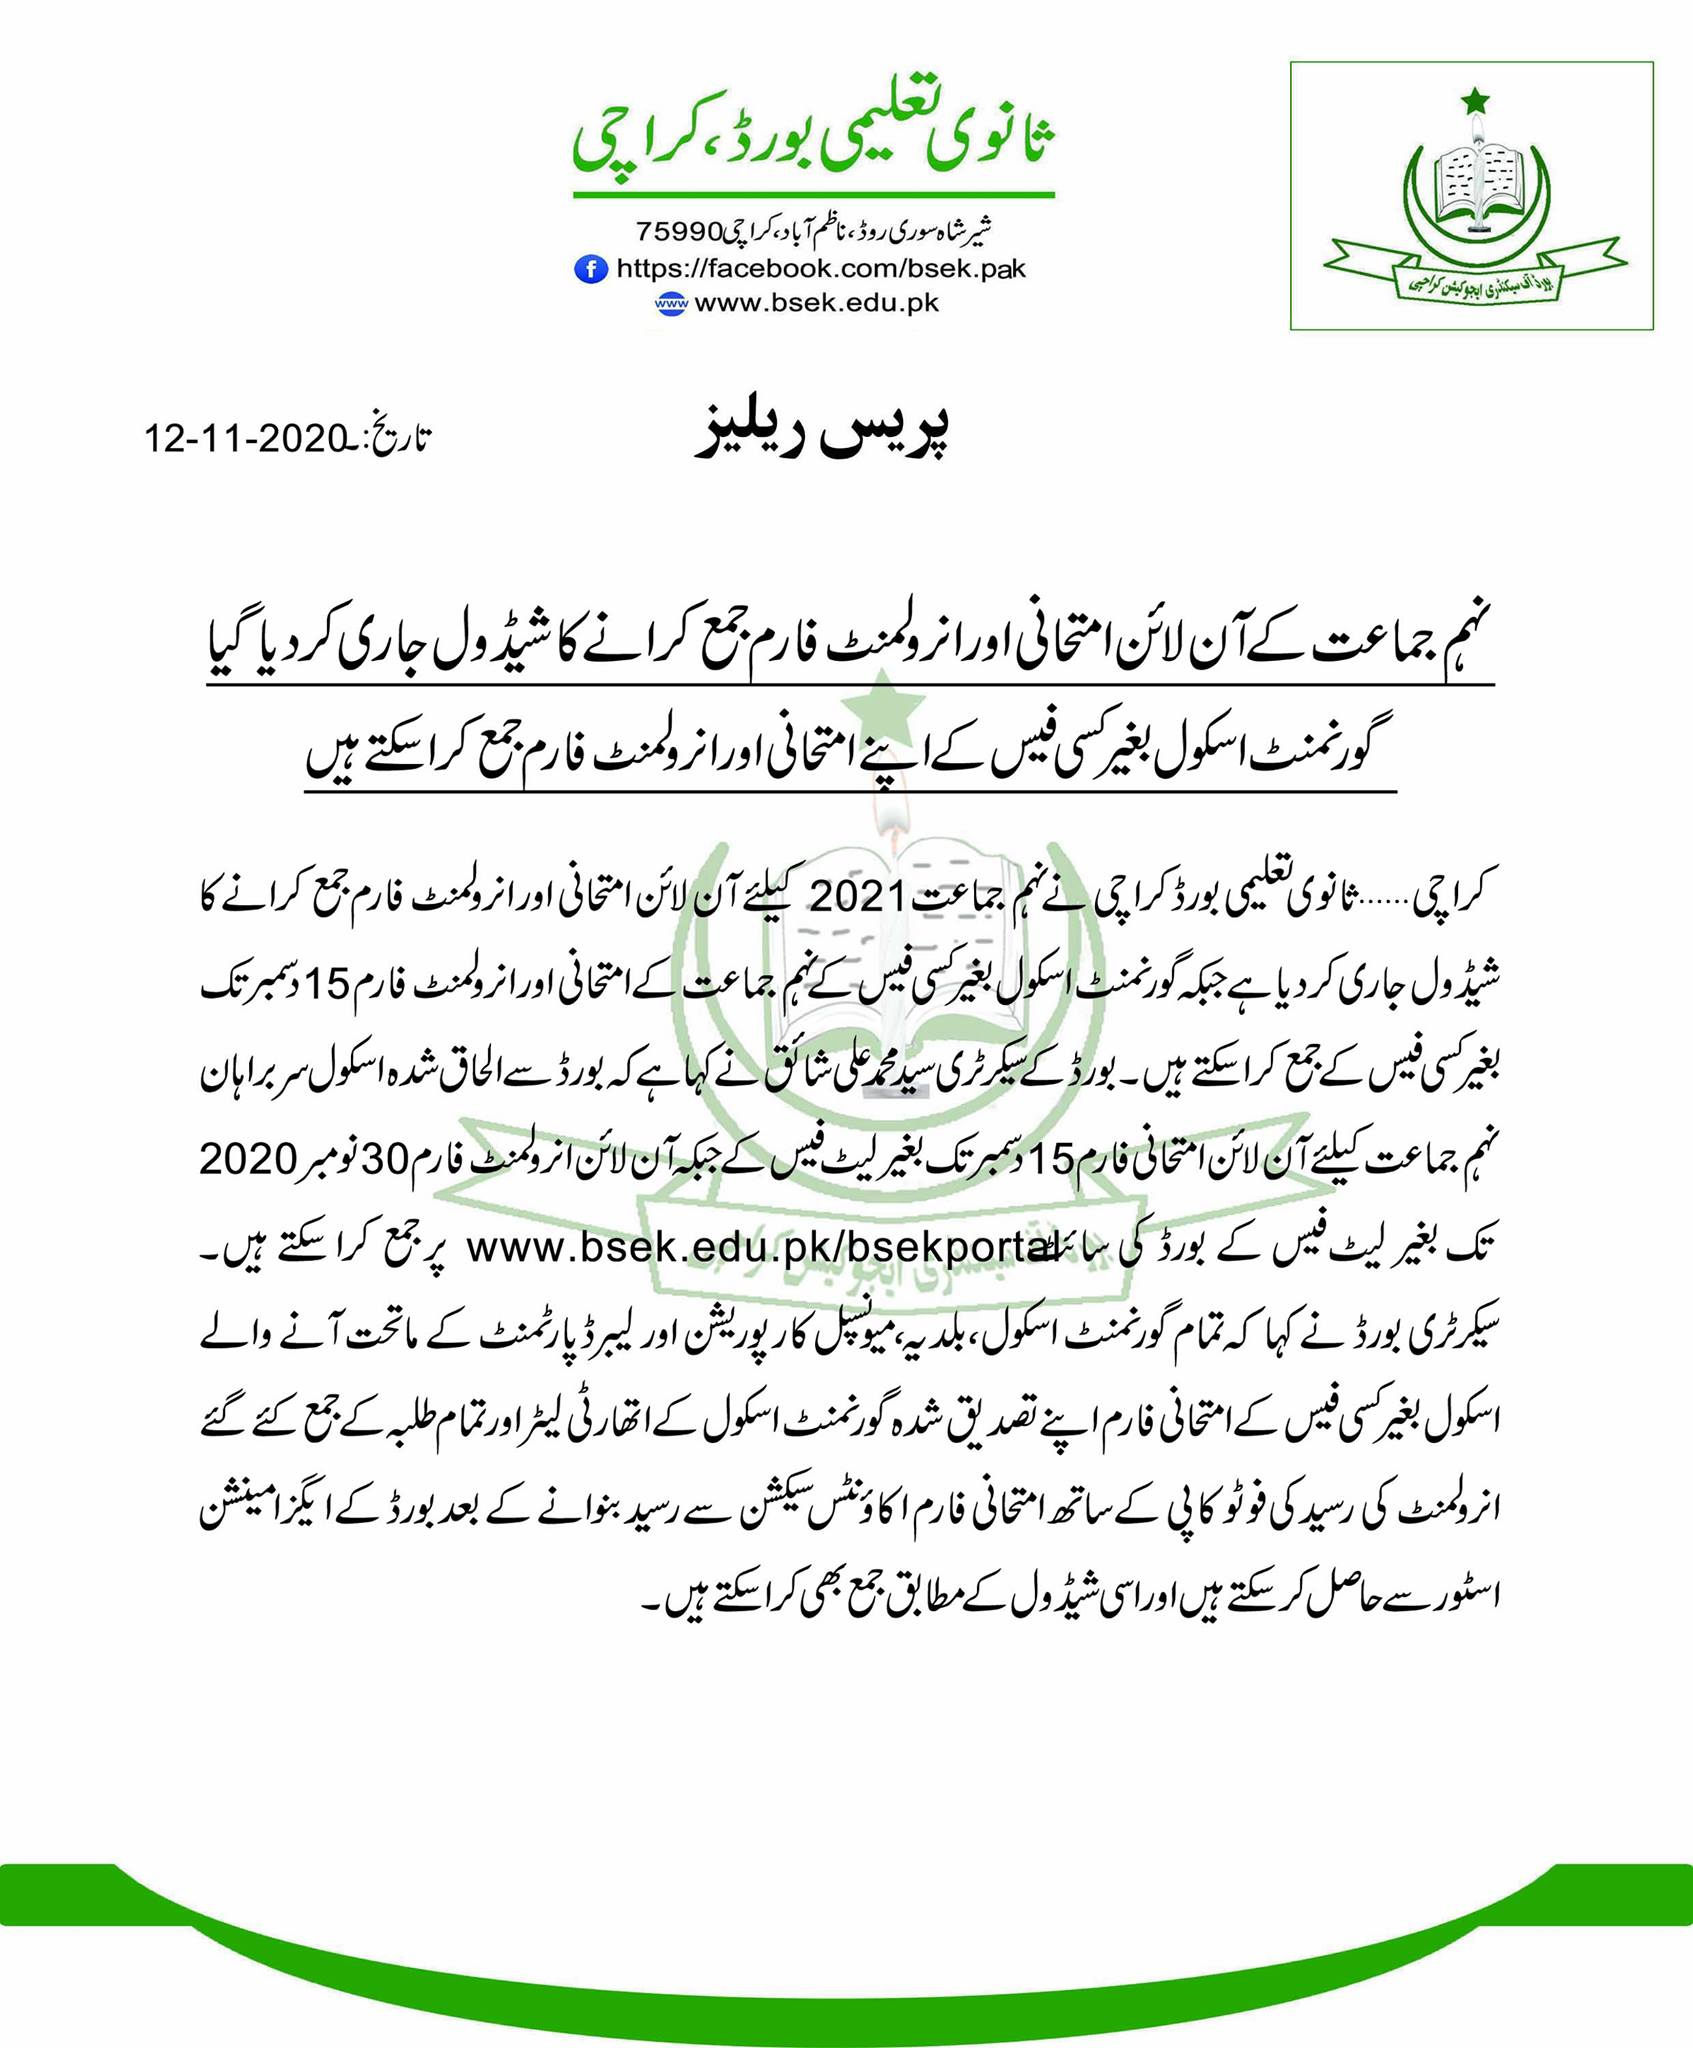 Online Examination and Enrollment Forms Schedule Class 9th BSEK Karachi